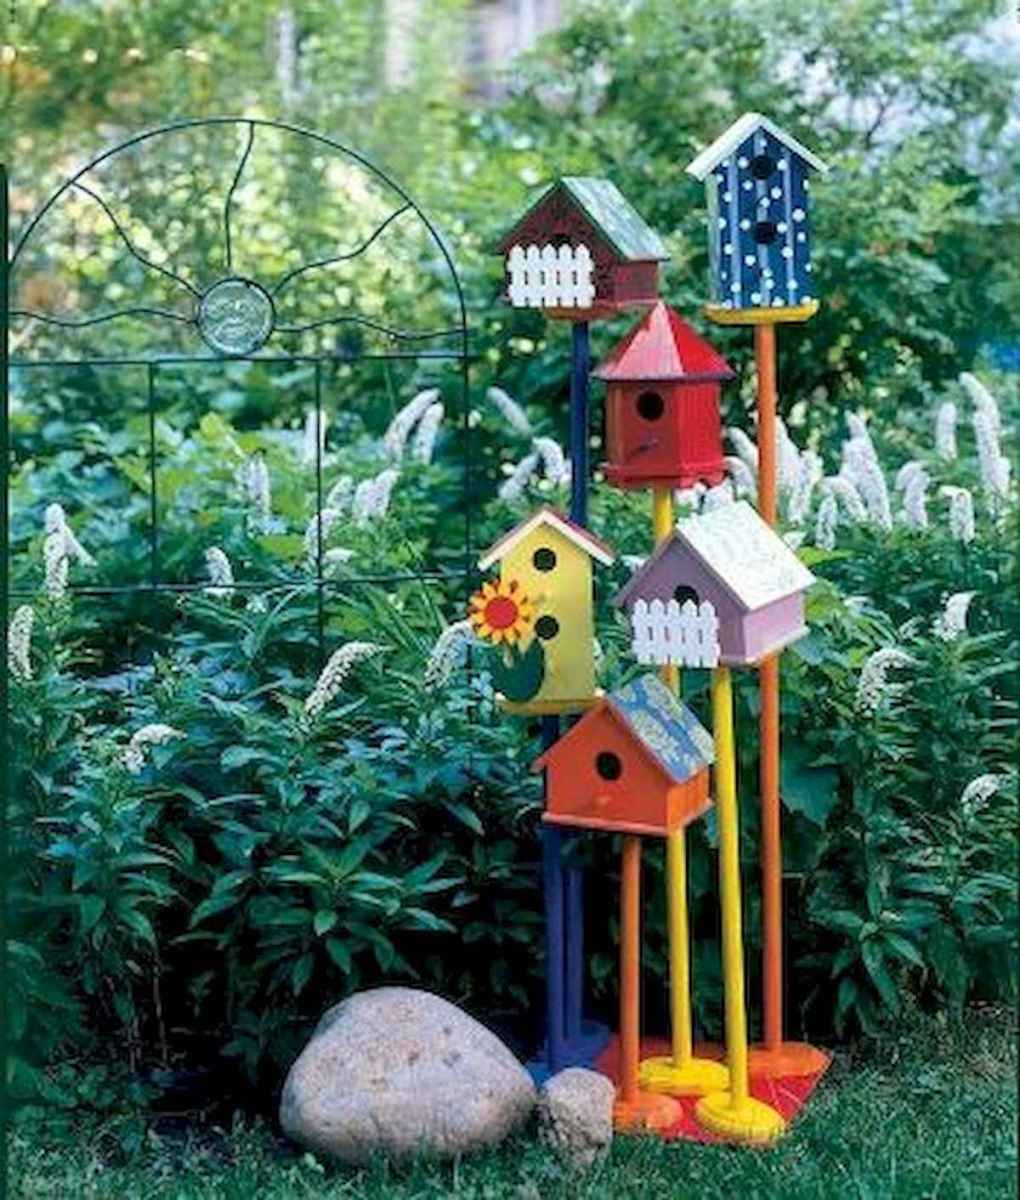 33 Awesome DIY Painted Garden Decoration Ideas for a Colorful Yard (19)